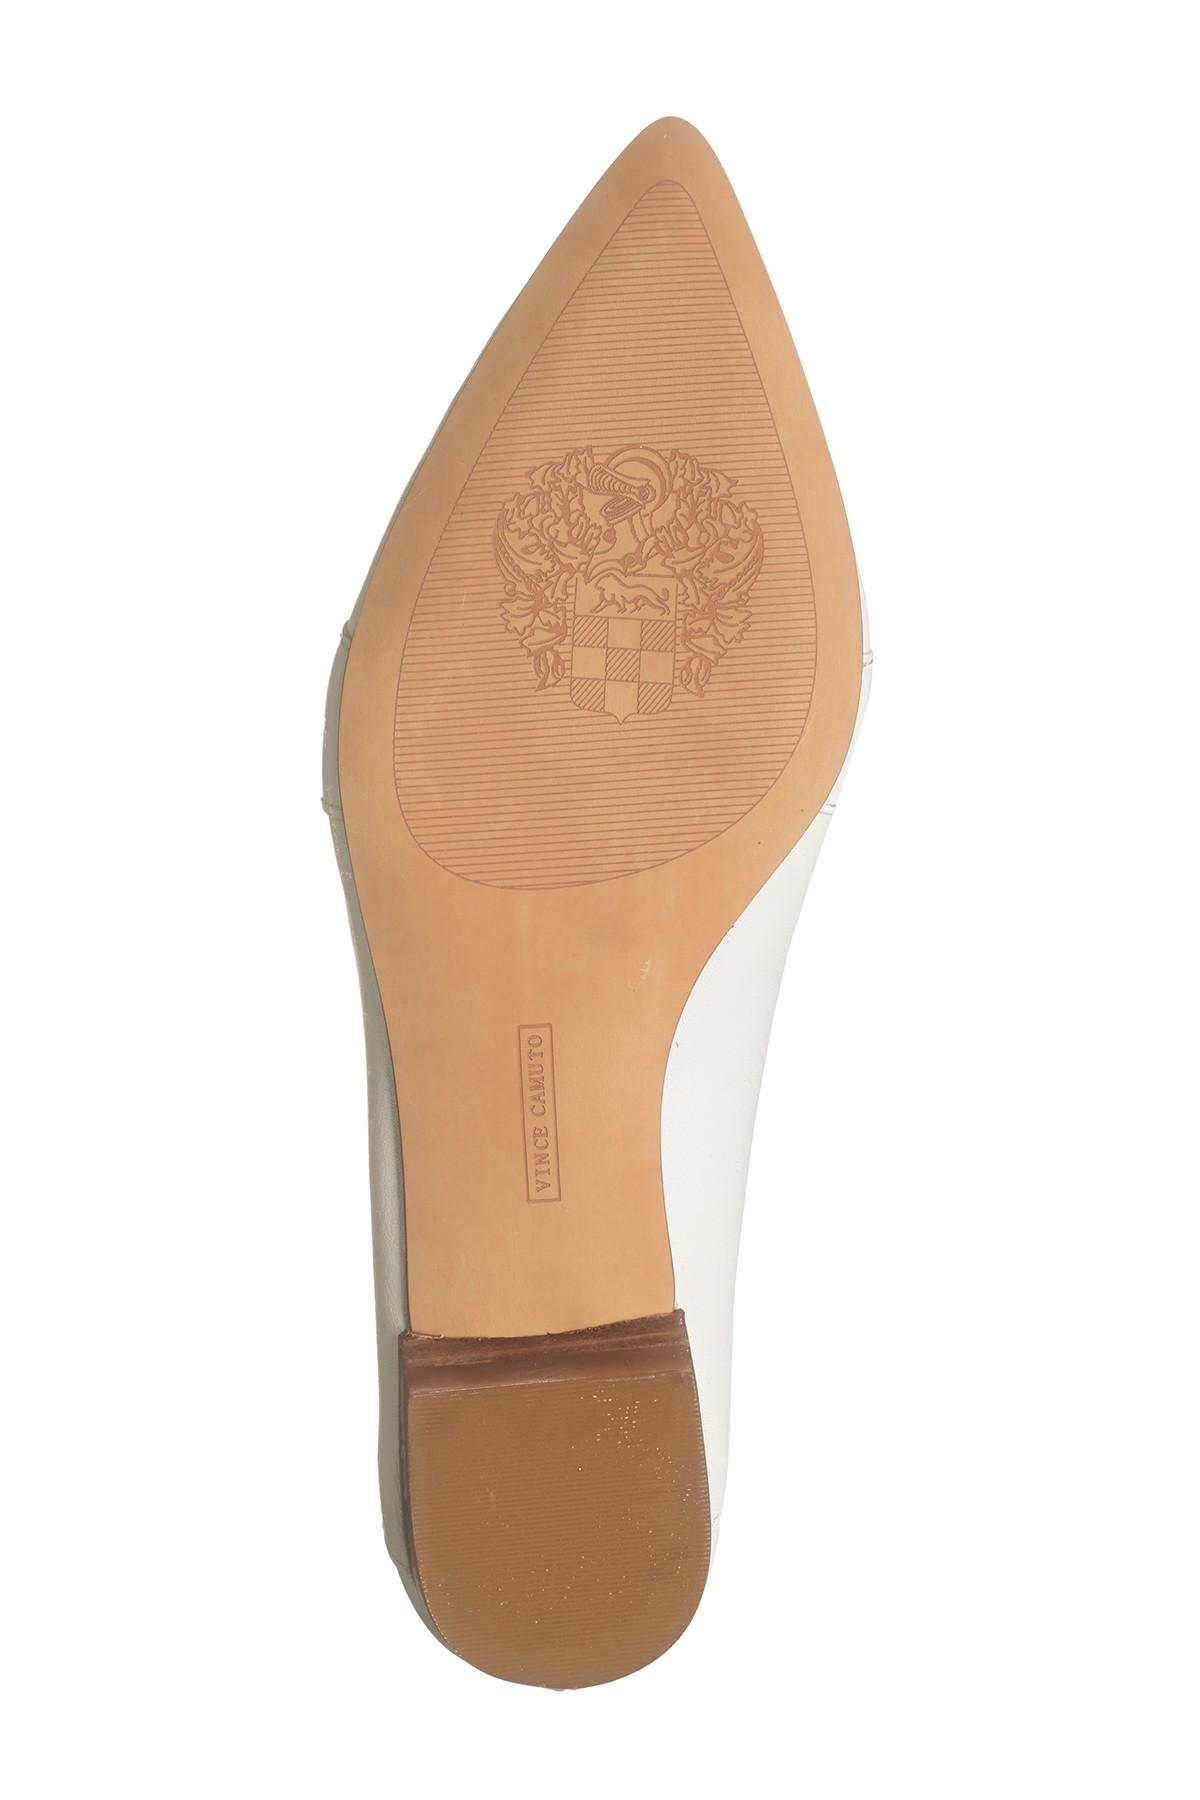 31caa1d5bc9 Vince Camuto - White Maita Pointed Toe Leather Loafer - Lyst. View  fullscreen